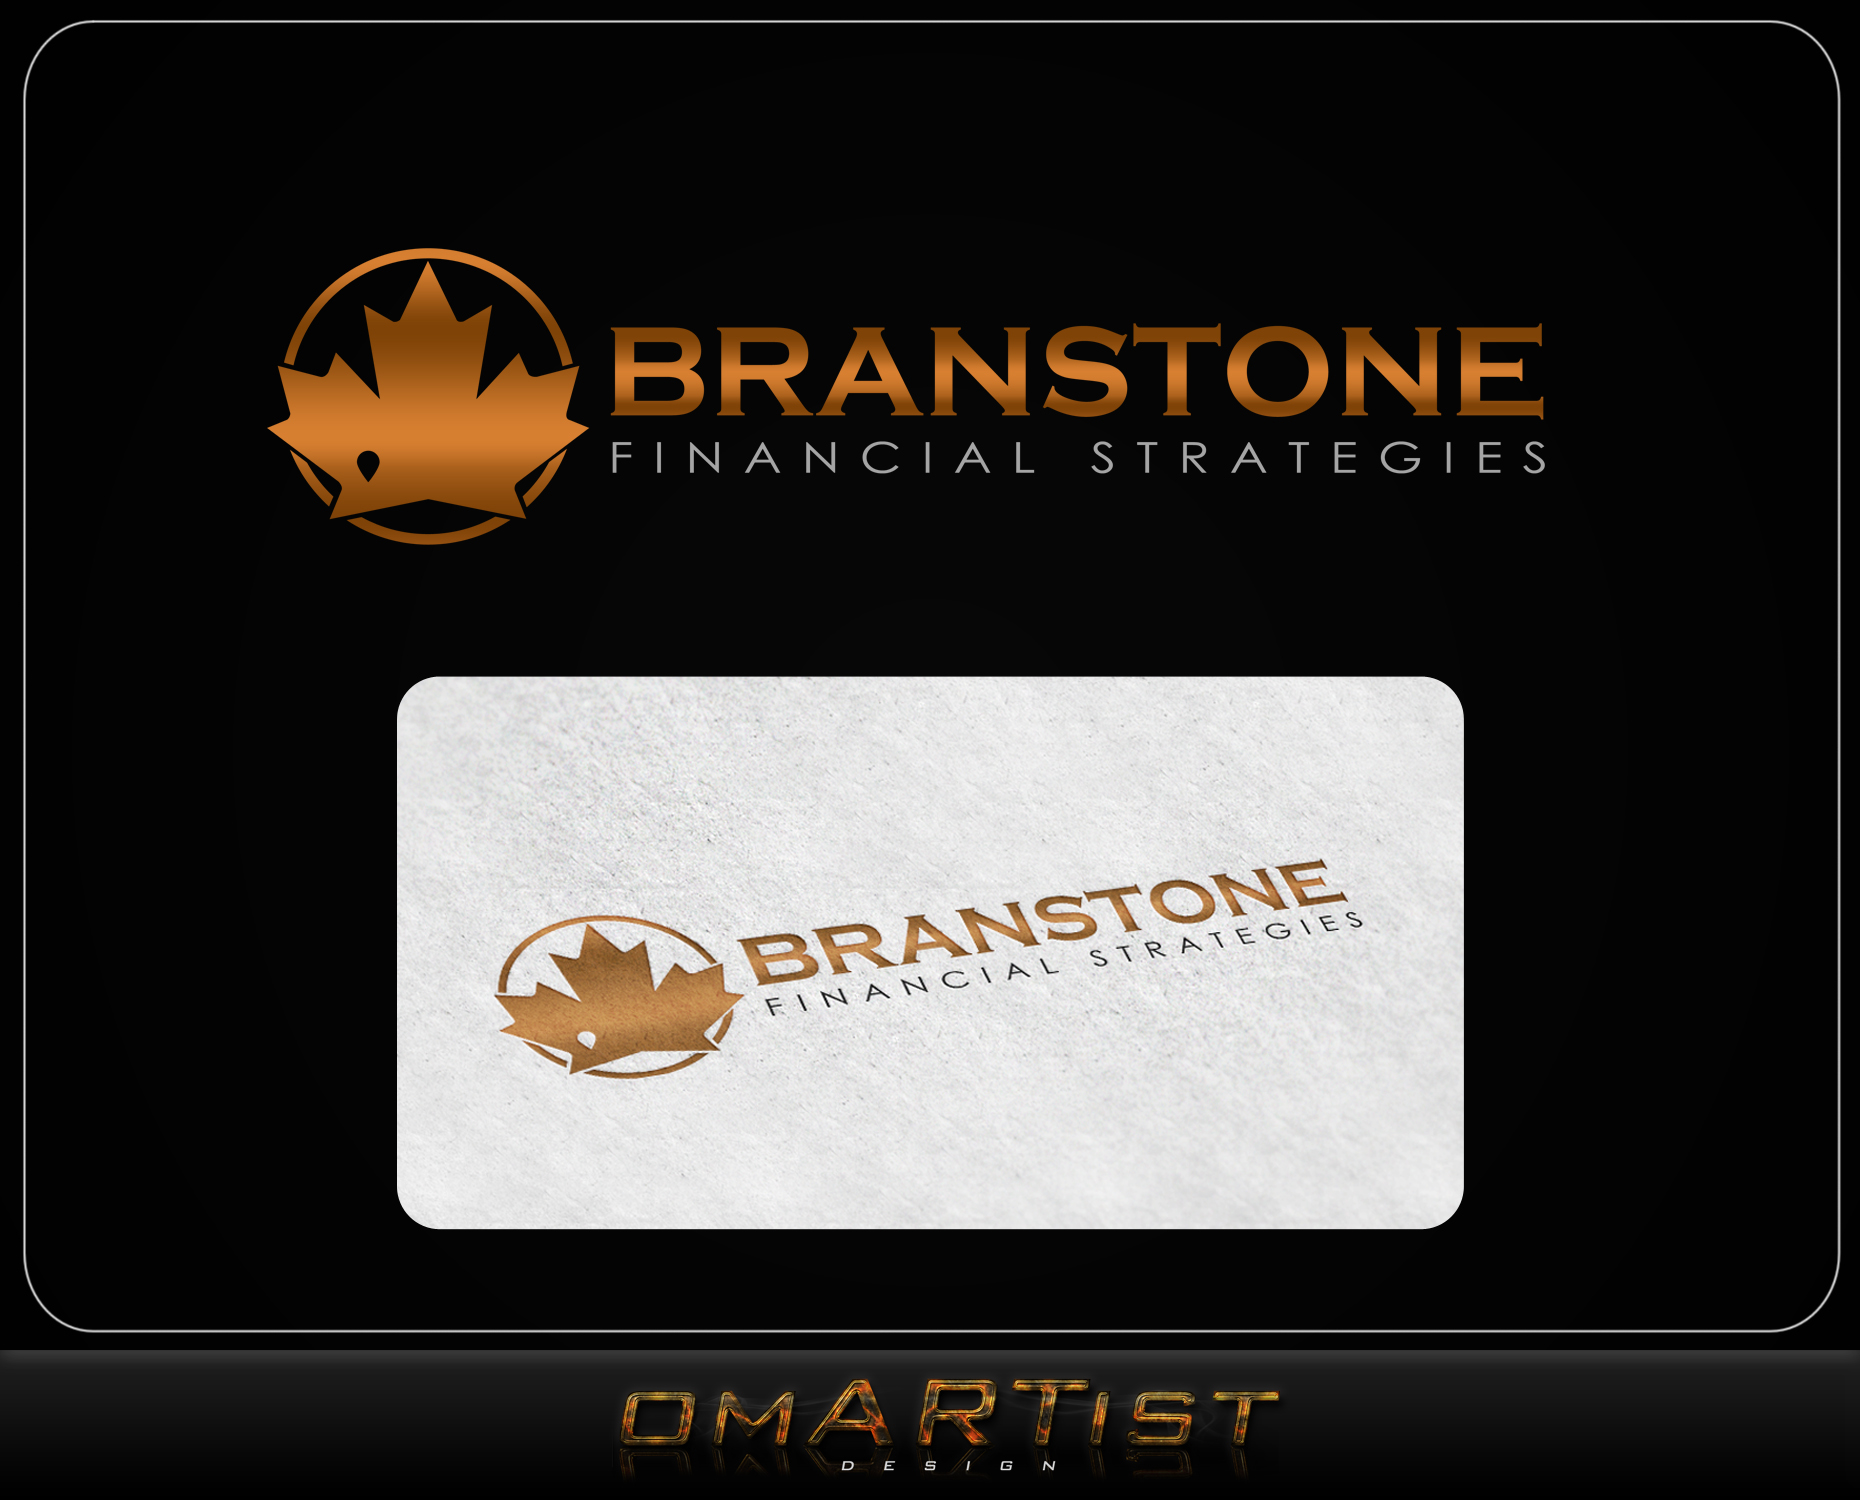 Logo Design by omARTist - Entry No. 199 in the Logo Design Contest Inspiring Logo Design for Branstone Financial Strategies.